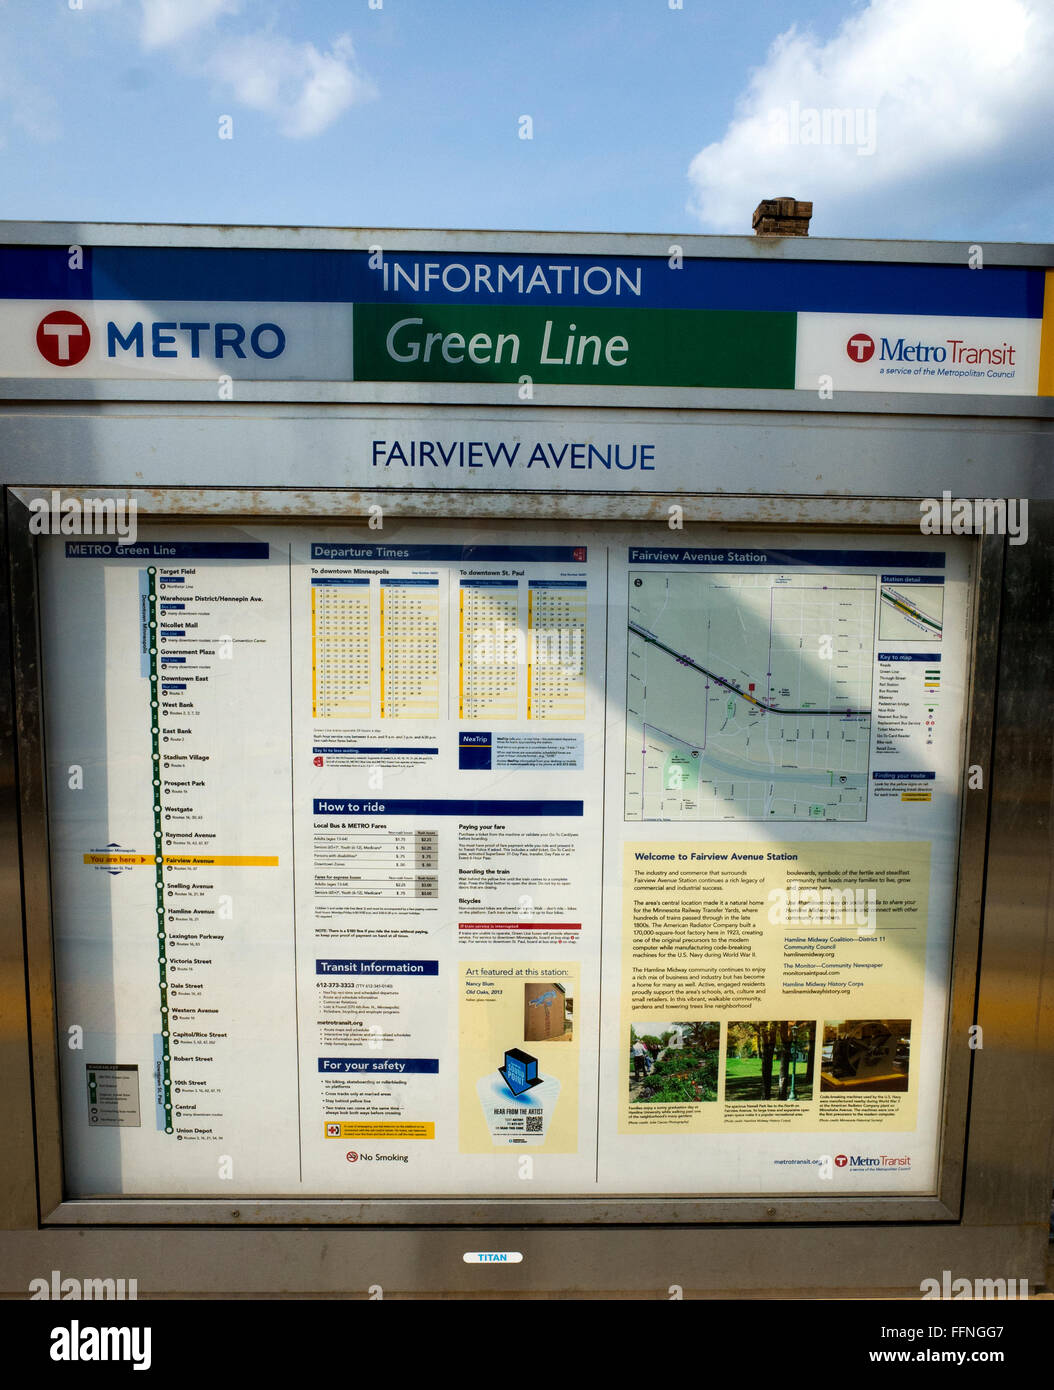 Schedule and map of Green Line Metro Transit Light Rail Train traveling between St Paul & Minneapolis. St Paul - Stock Image